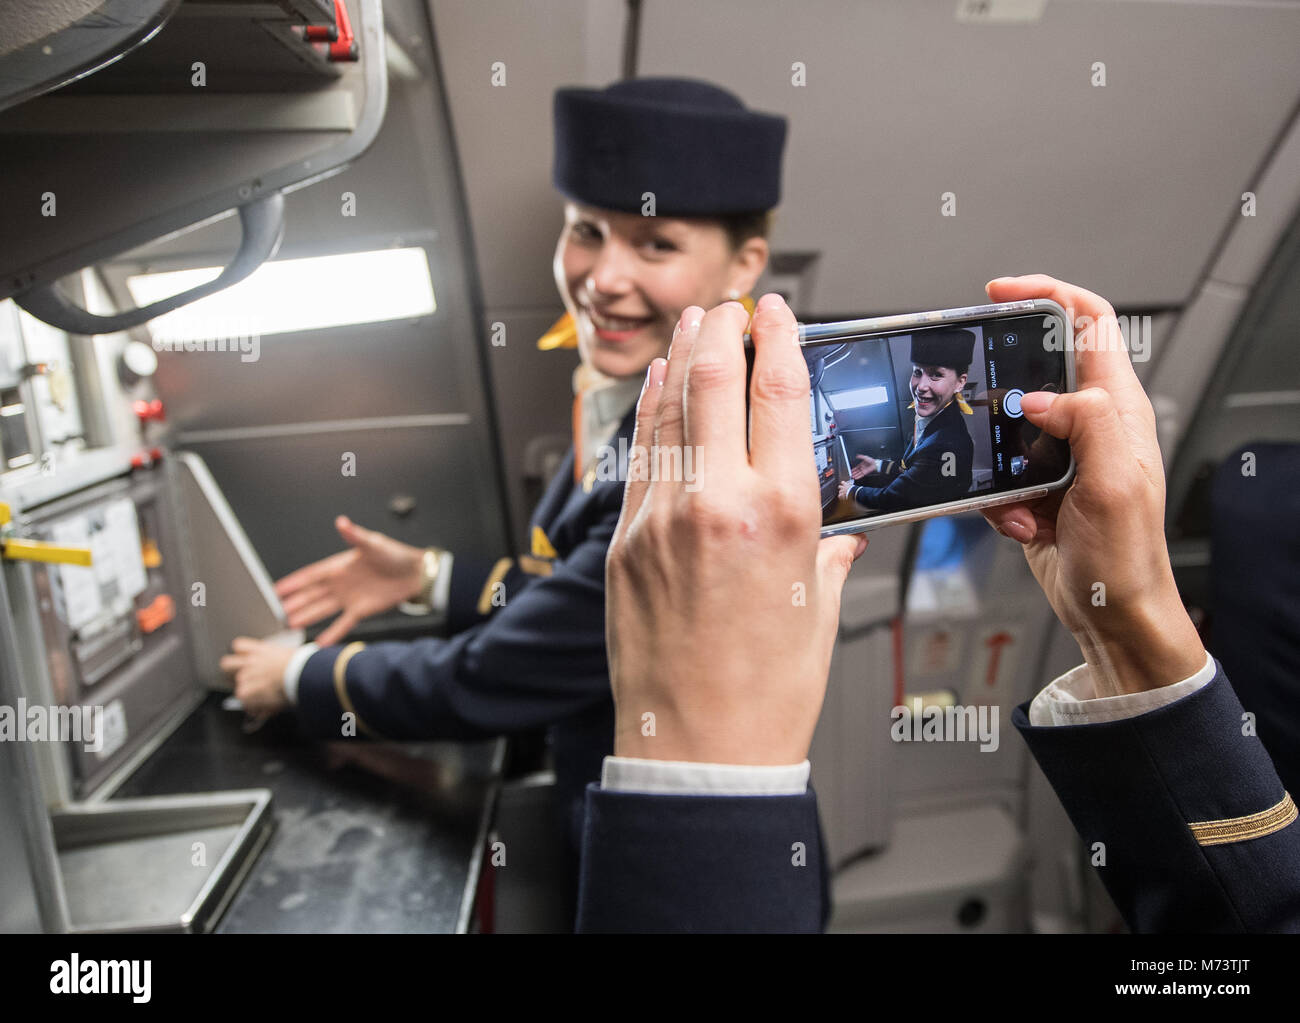 08 March 2018, Germany, Frankfurt: A stewardess takes a photo of her colleague in the Airbus A 321 flight to Berlin. - Stock Image